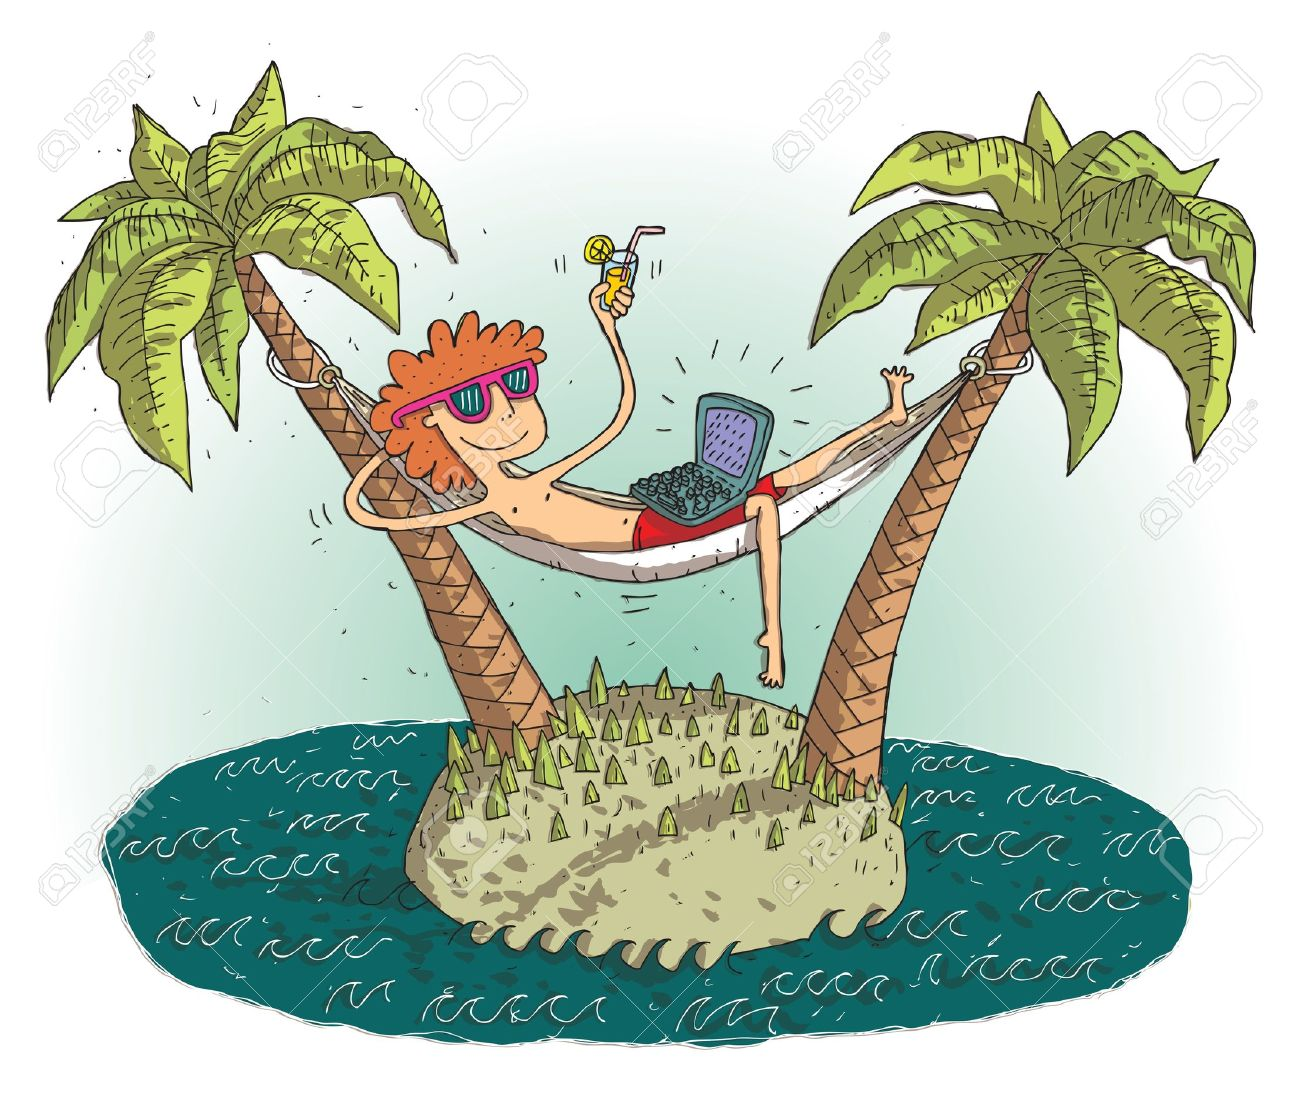 Global Village Cartoon With Satisfied Teenager On Deserted Island...  Royalty Free Cliparts, Vectors, And Stock Illustration. Image 21813799.